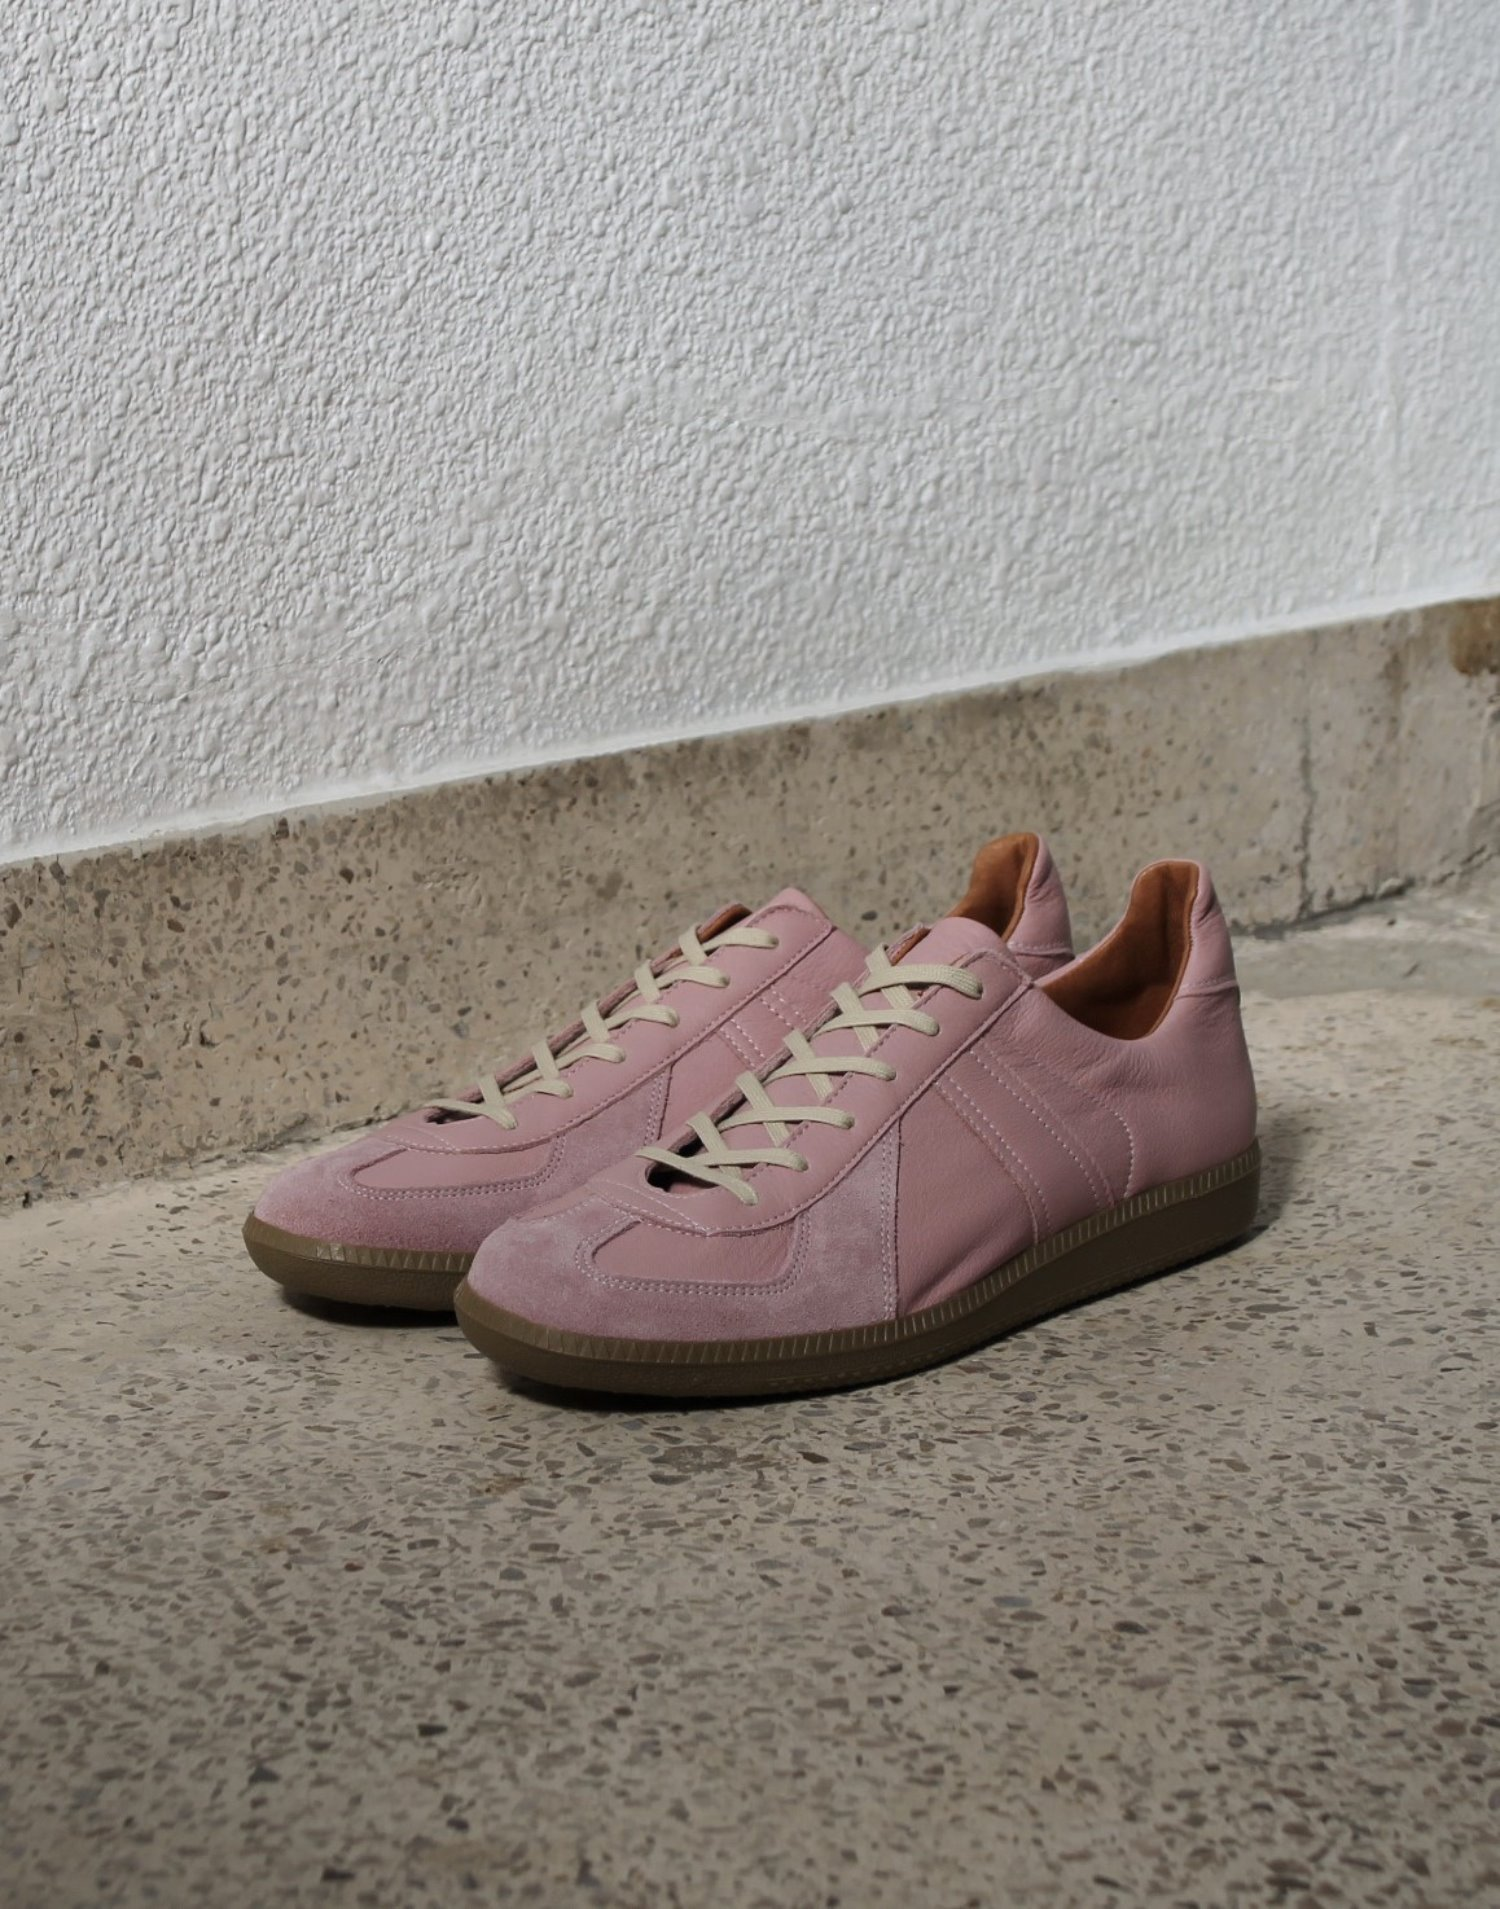 [Reproduction of Found] German Military Trainer 1700L - Light Pink